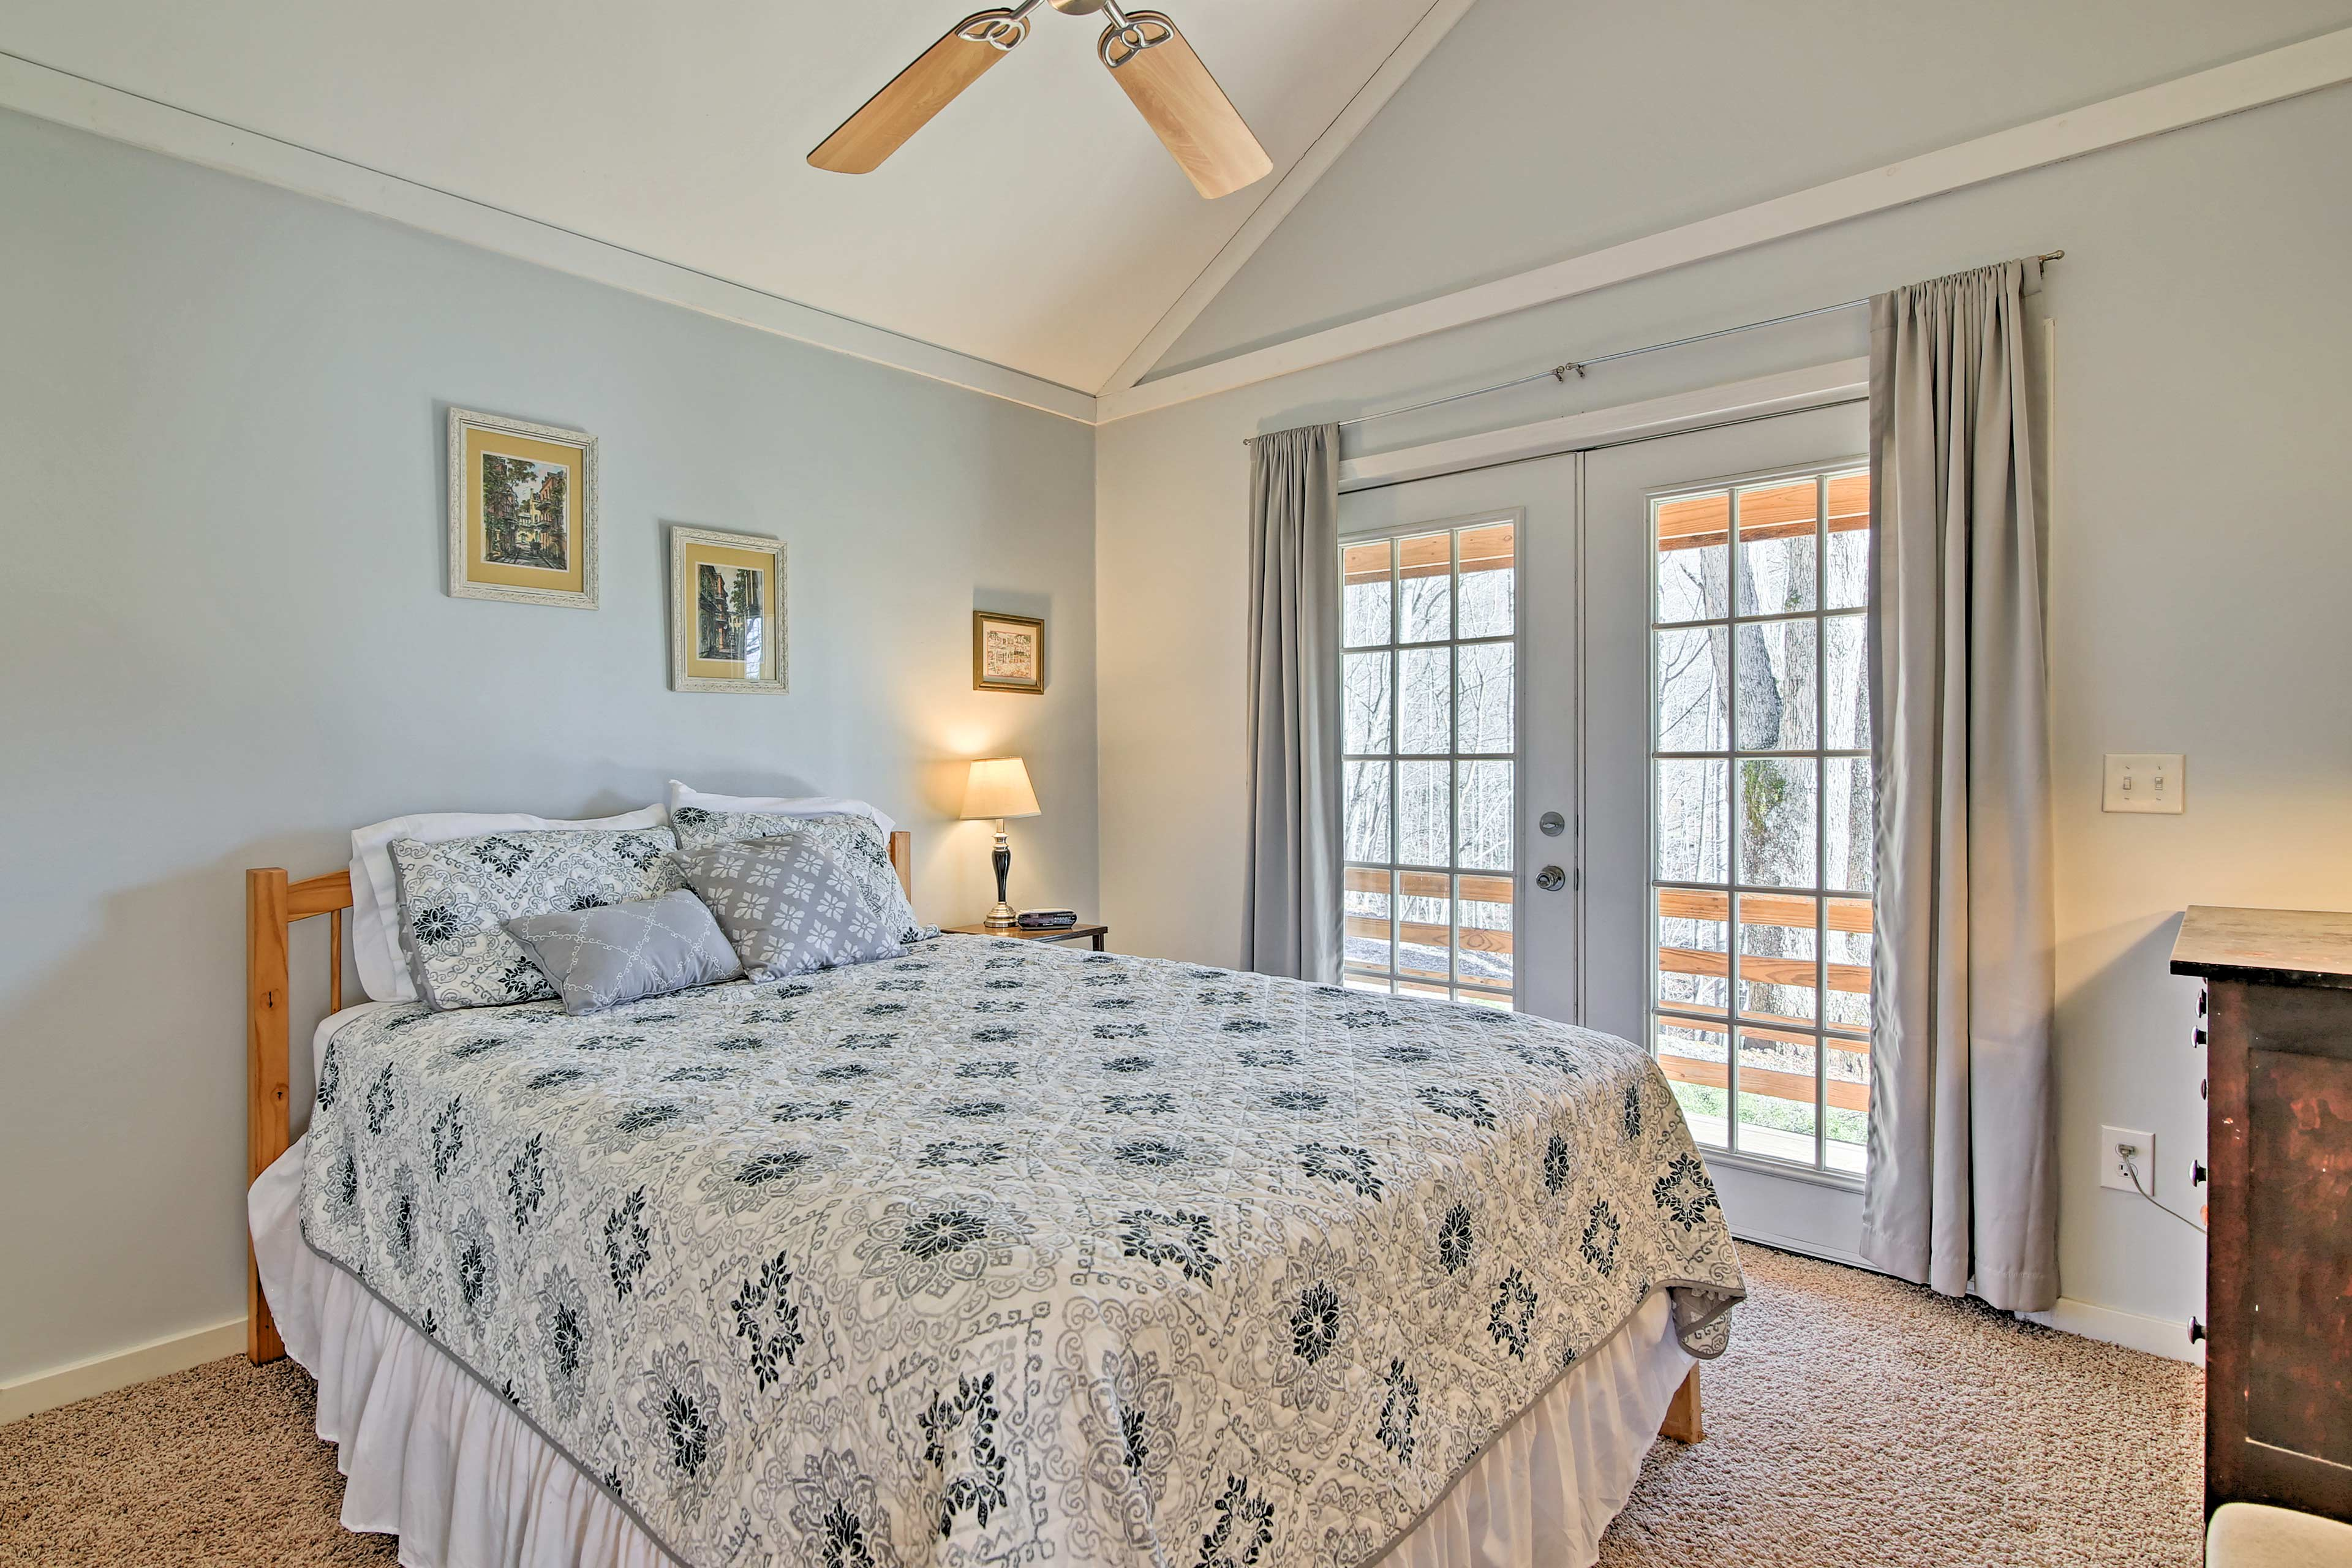 Doze off in the comfortable queen bed in the only bedroom.